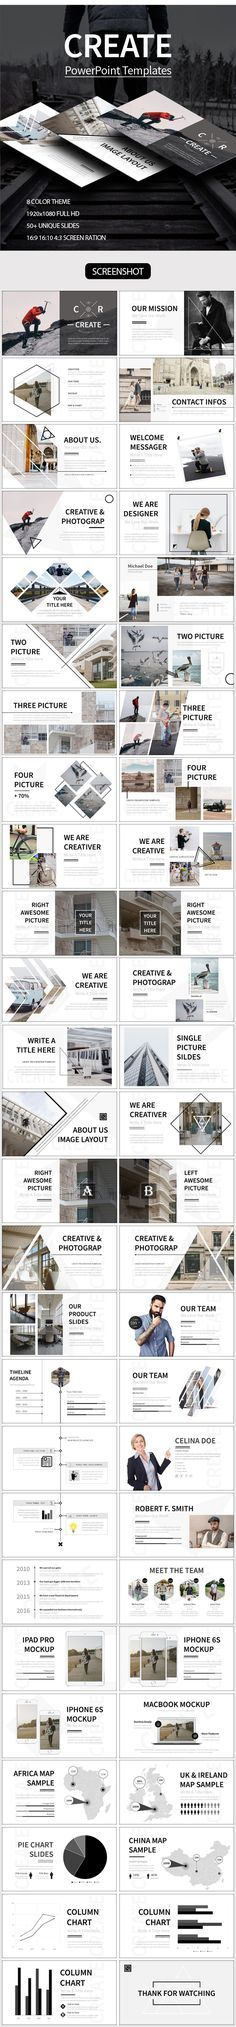 CREATE Powerpoint Template - Creative PowerPoint Templates